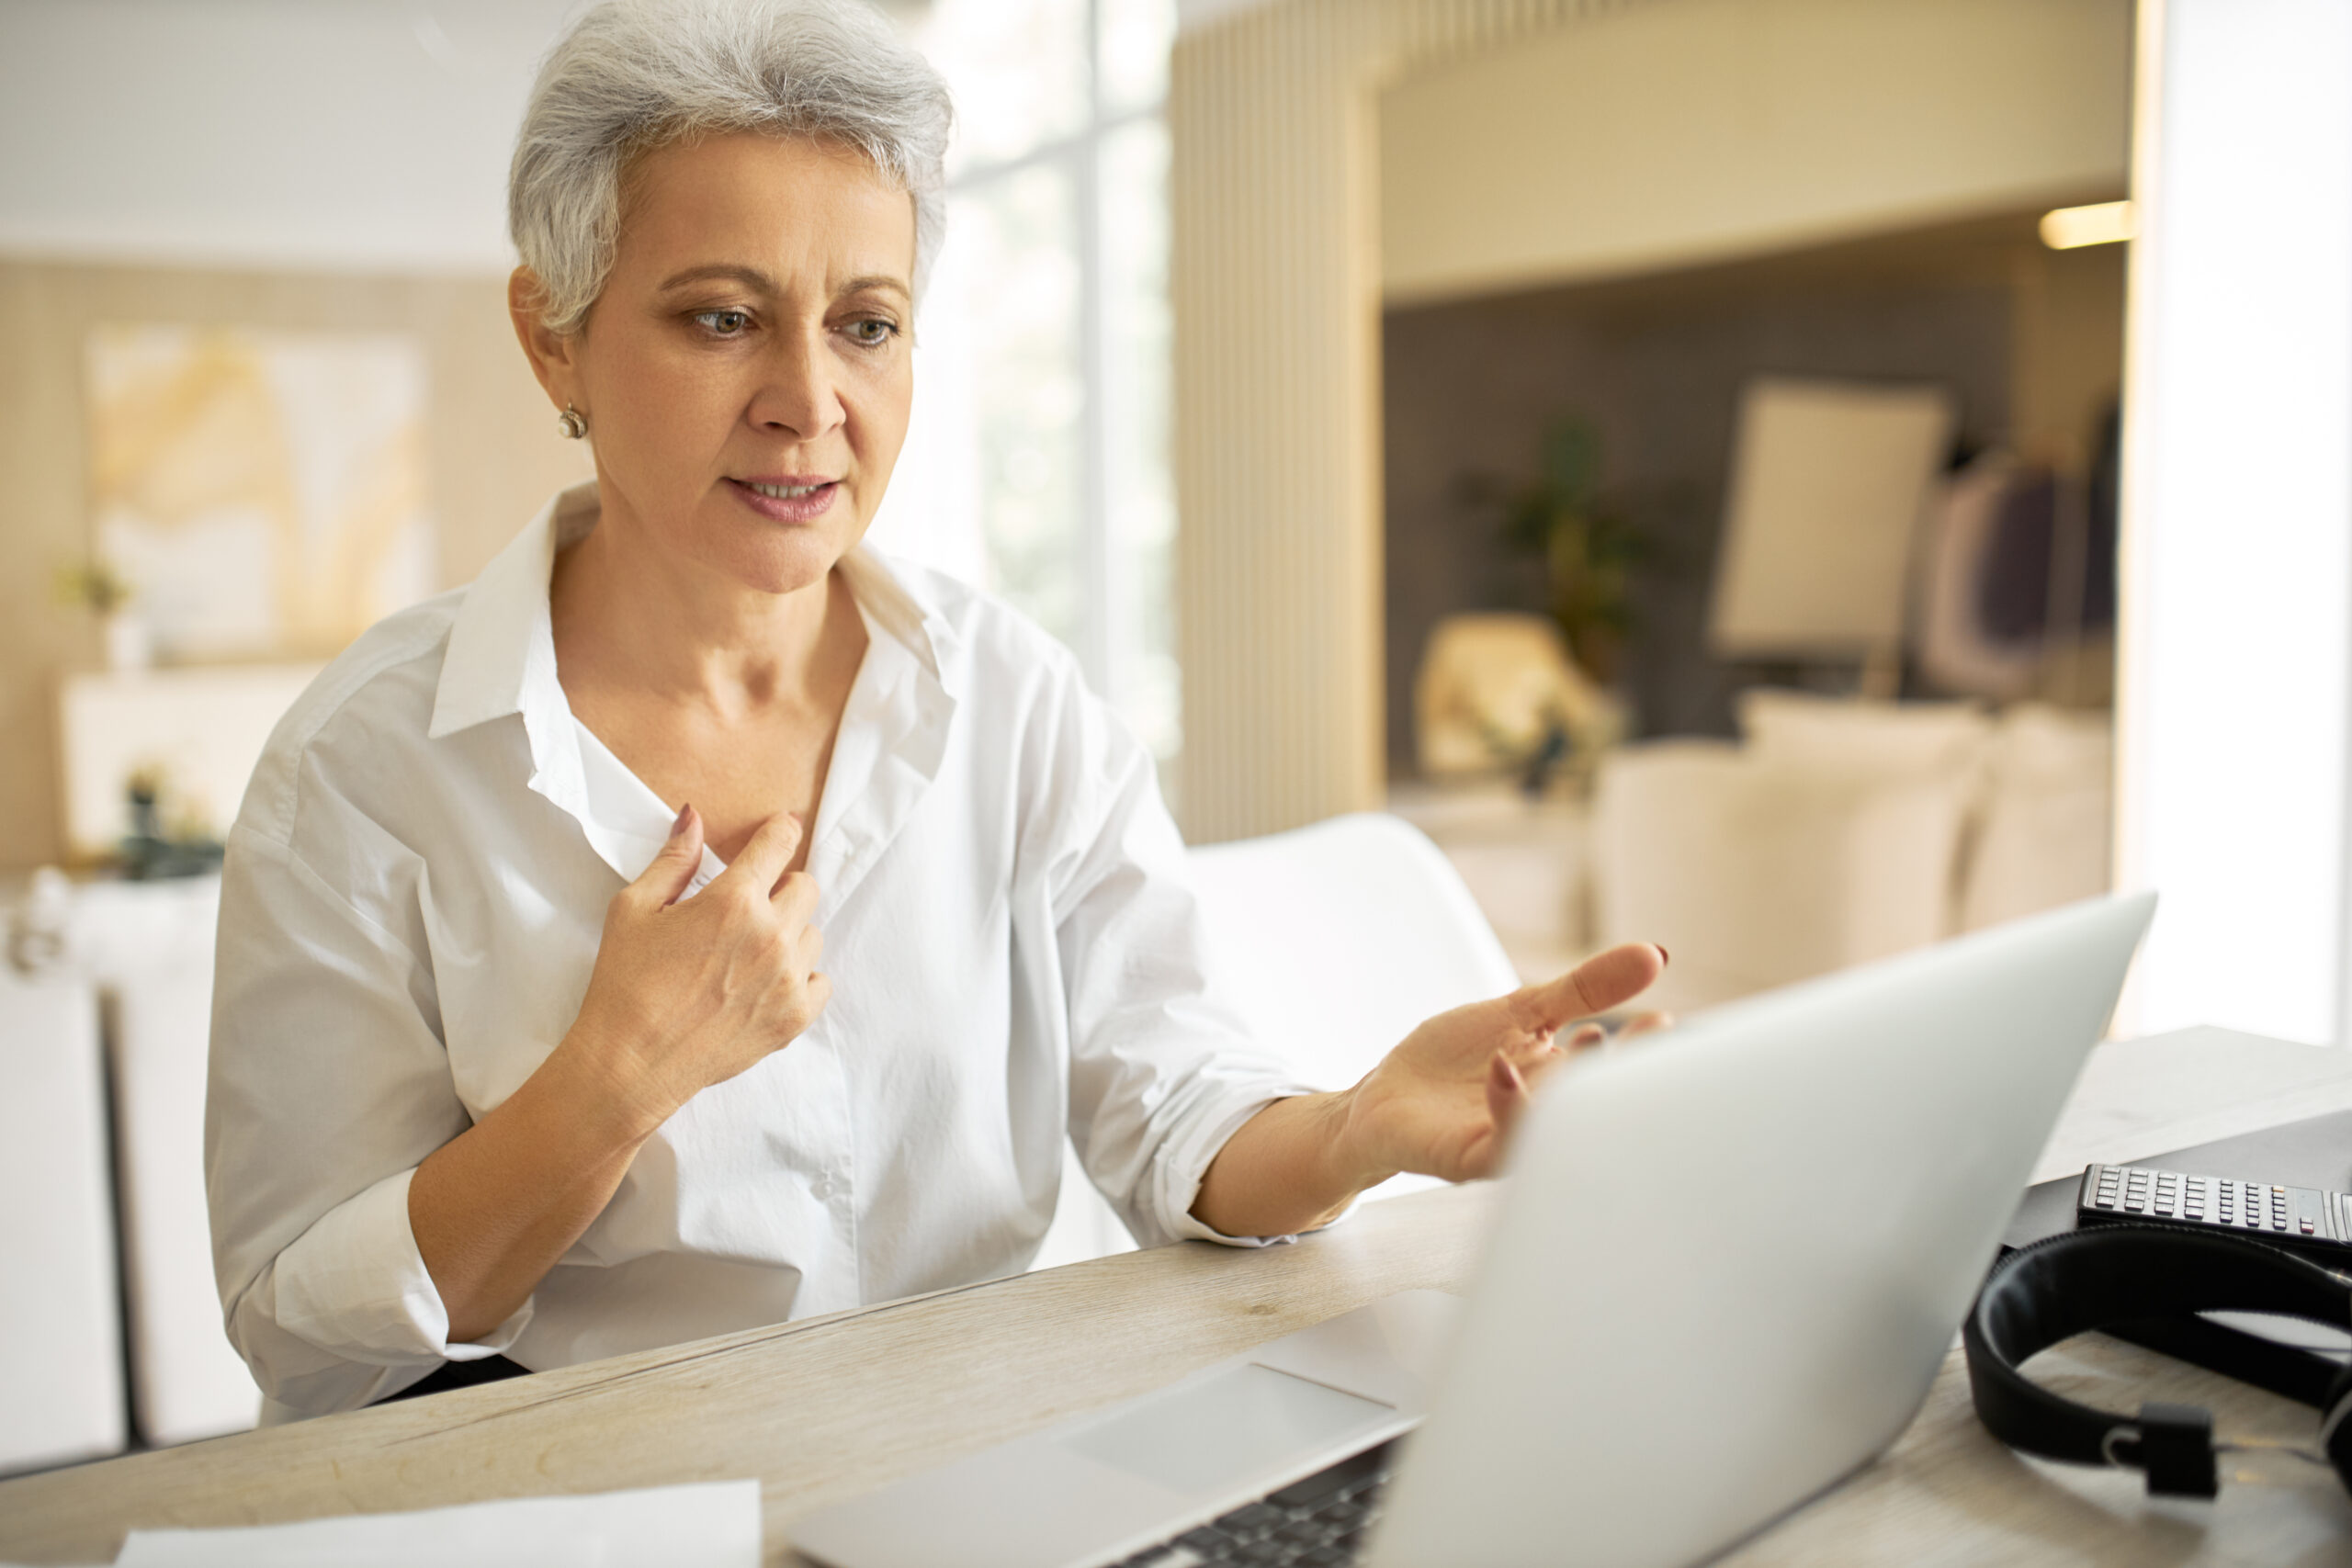 People, technology and communication concept. Serious middle aged female manager with gray hair sitting at table in front of portable computer, sharing her ideas with colleagues during video call